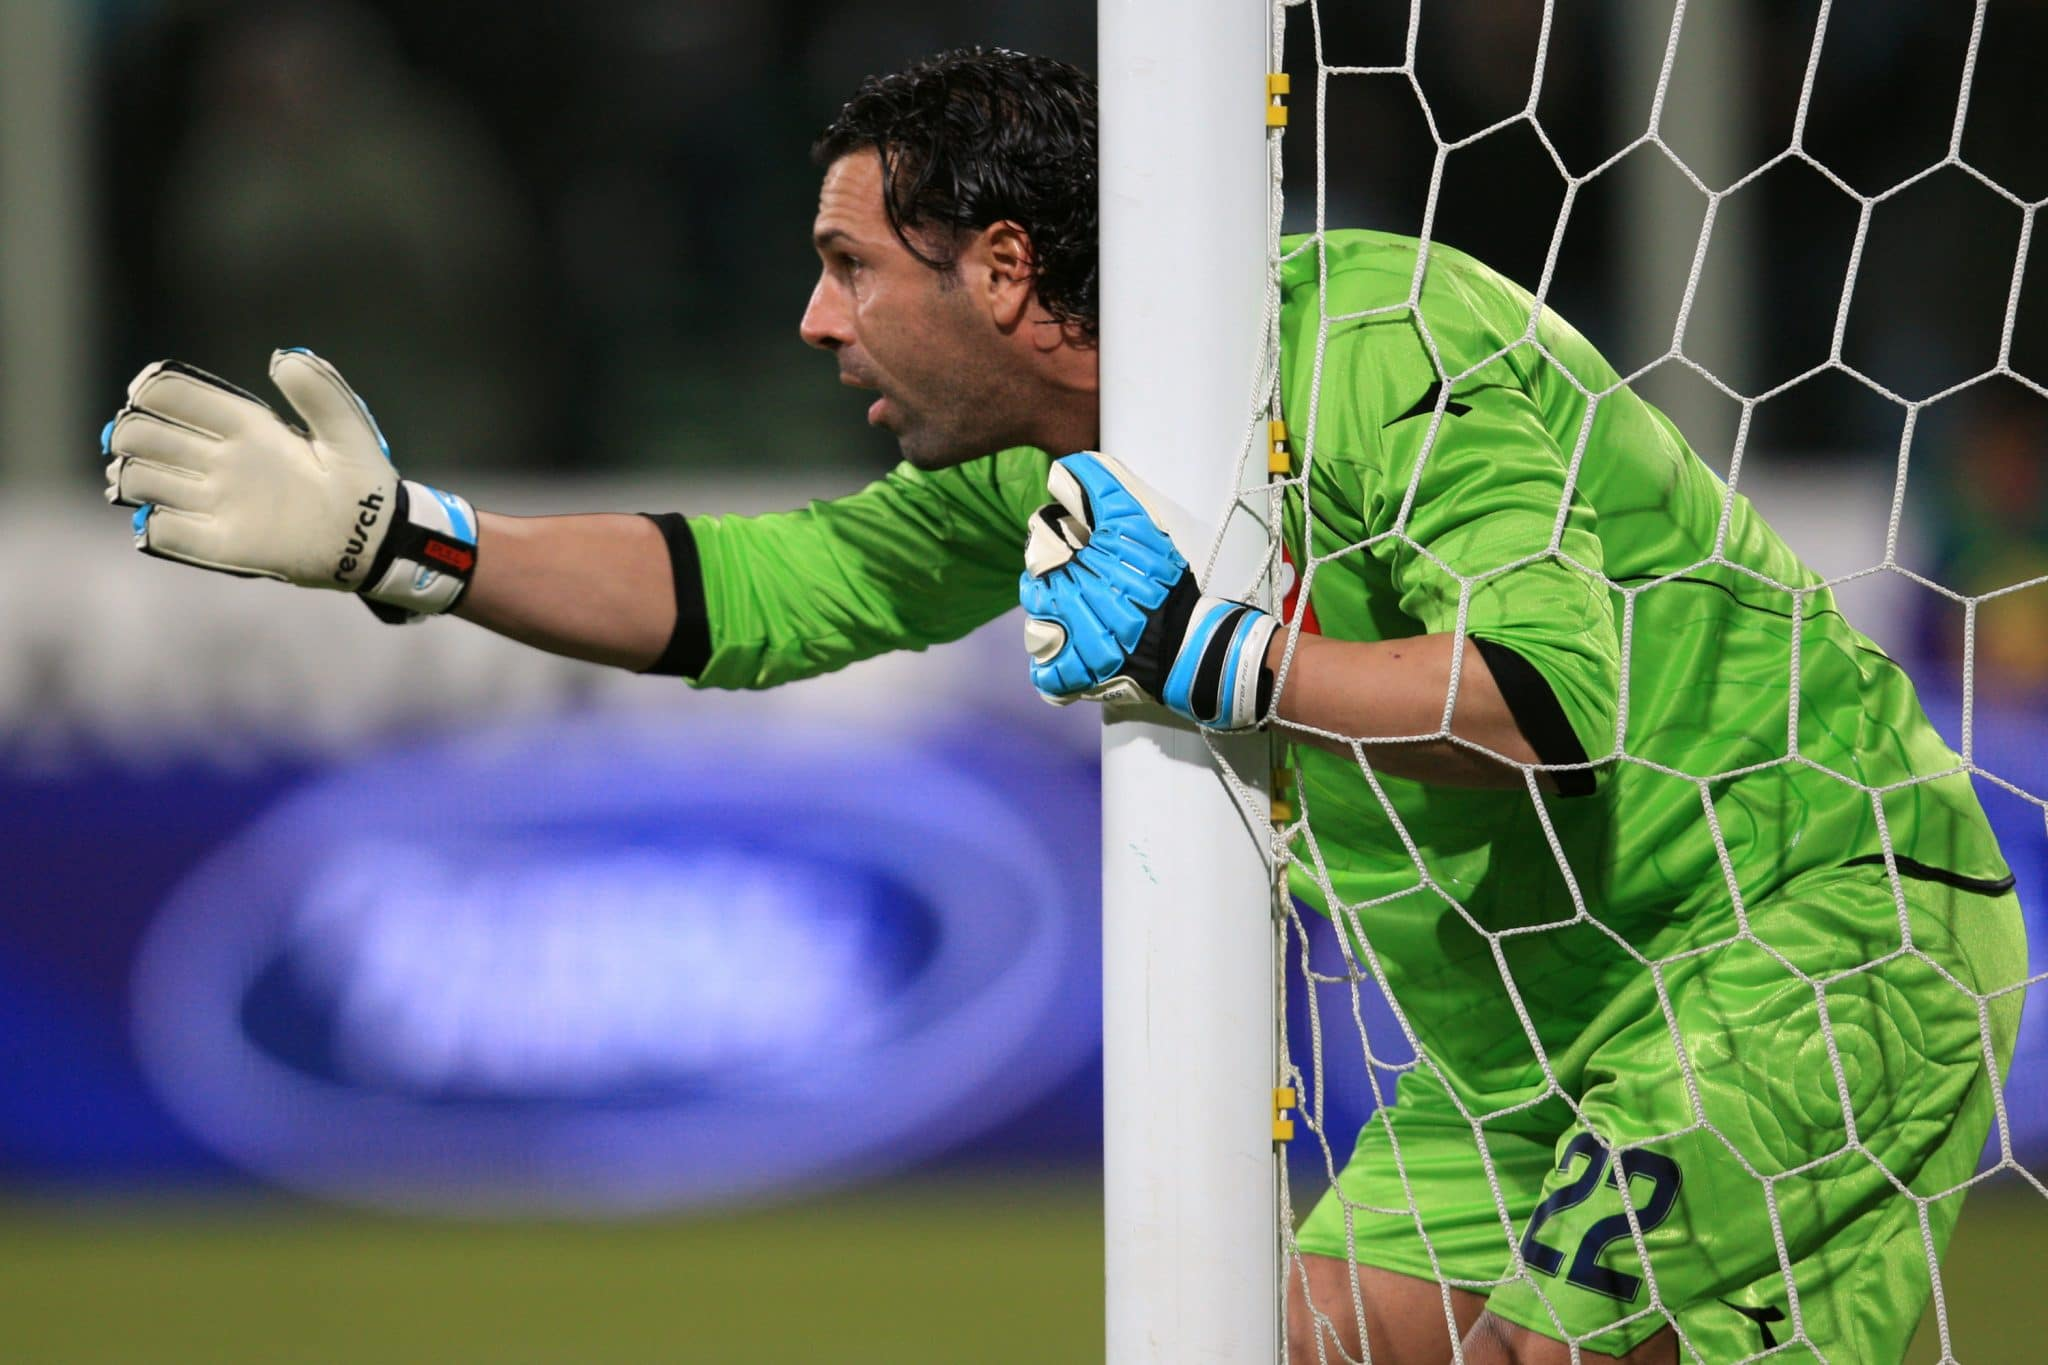 Matteo Gianello, Napoli goalkeeper  (Photo by Adam Davy - PA Images via Getty Images)